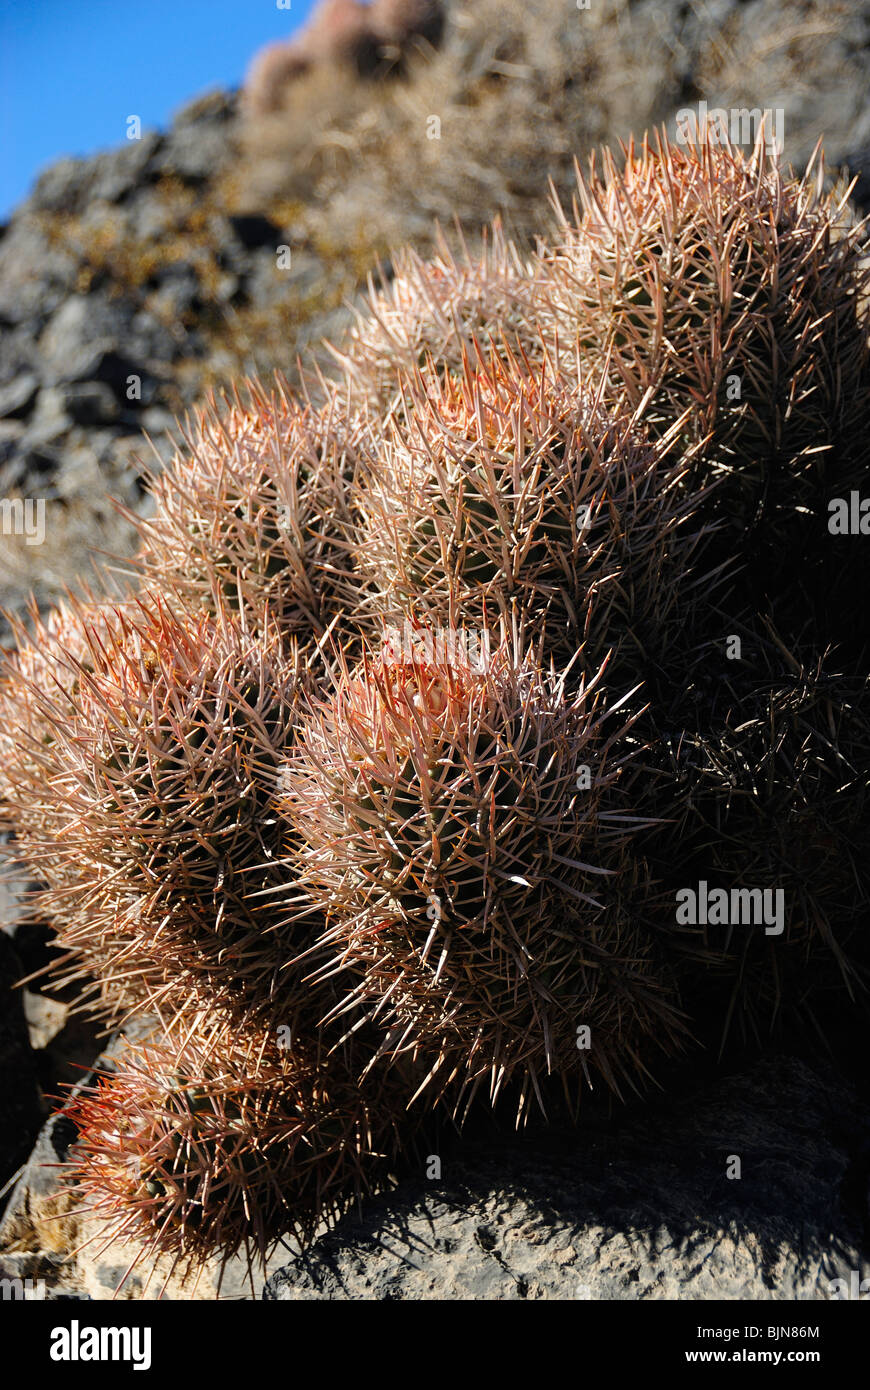 Close up of cactus growing in Death Valley, California state - Stock Image